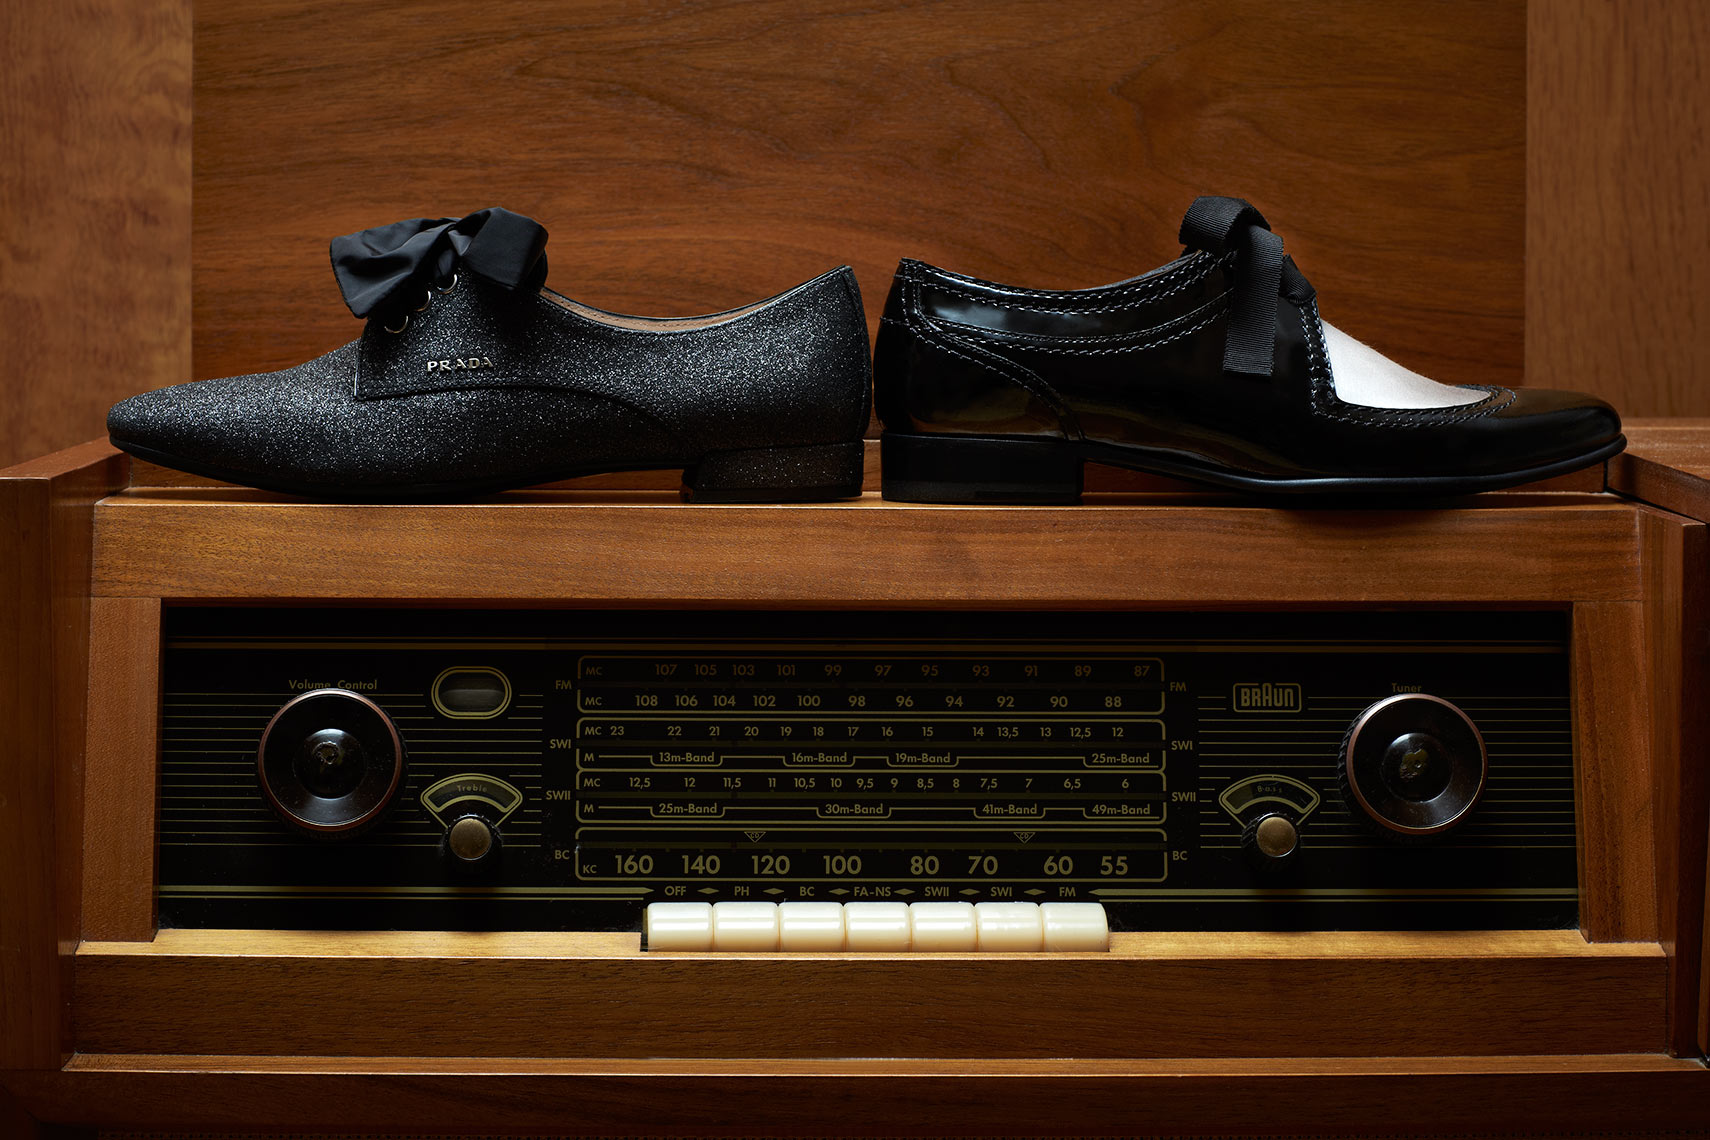 Fashion still life showing shoes on a vintage antique record player.